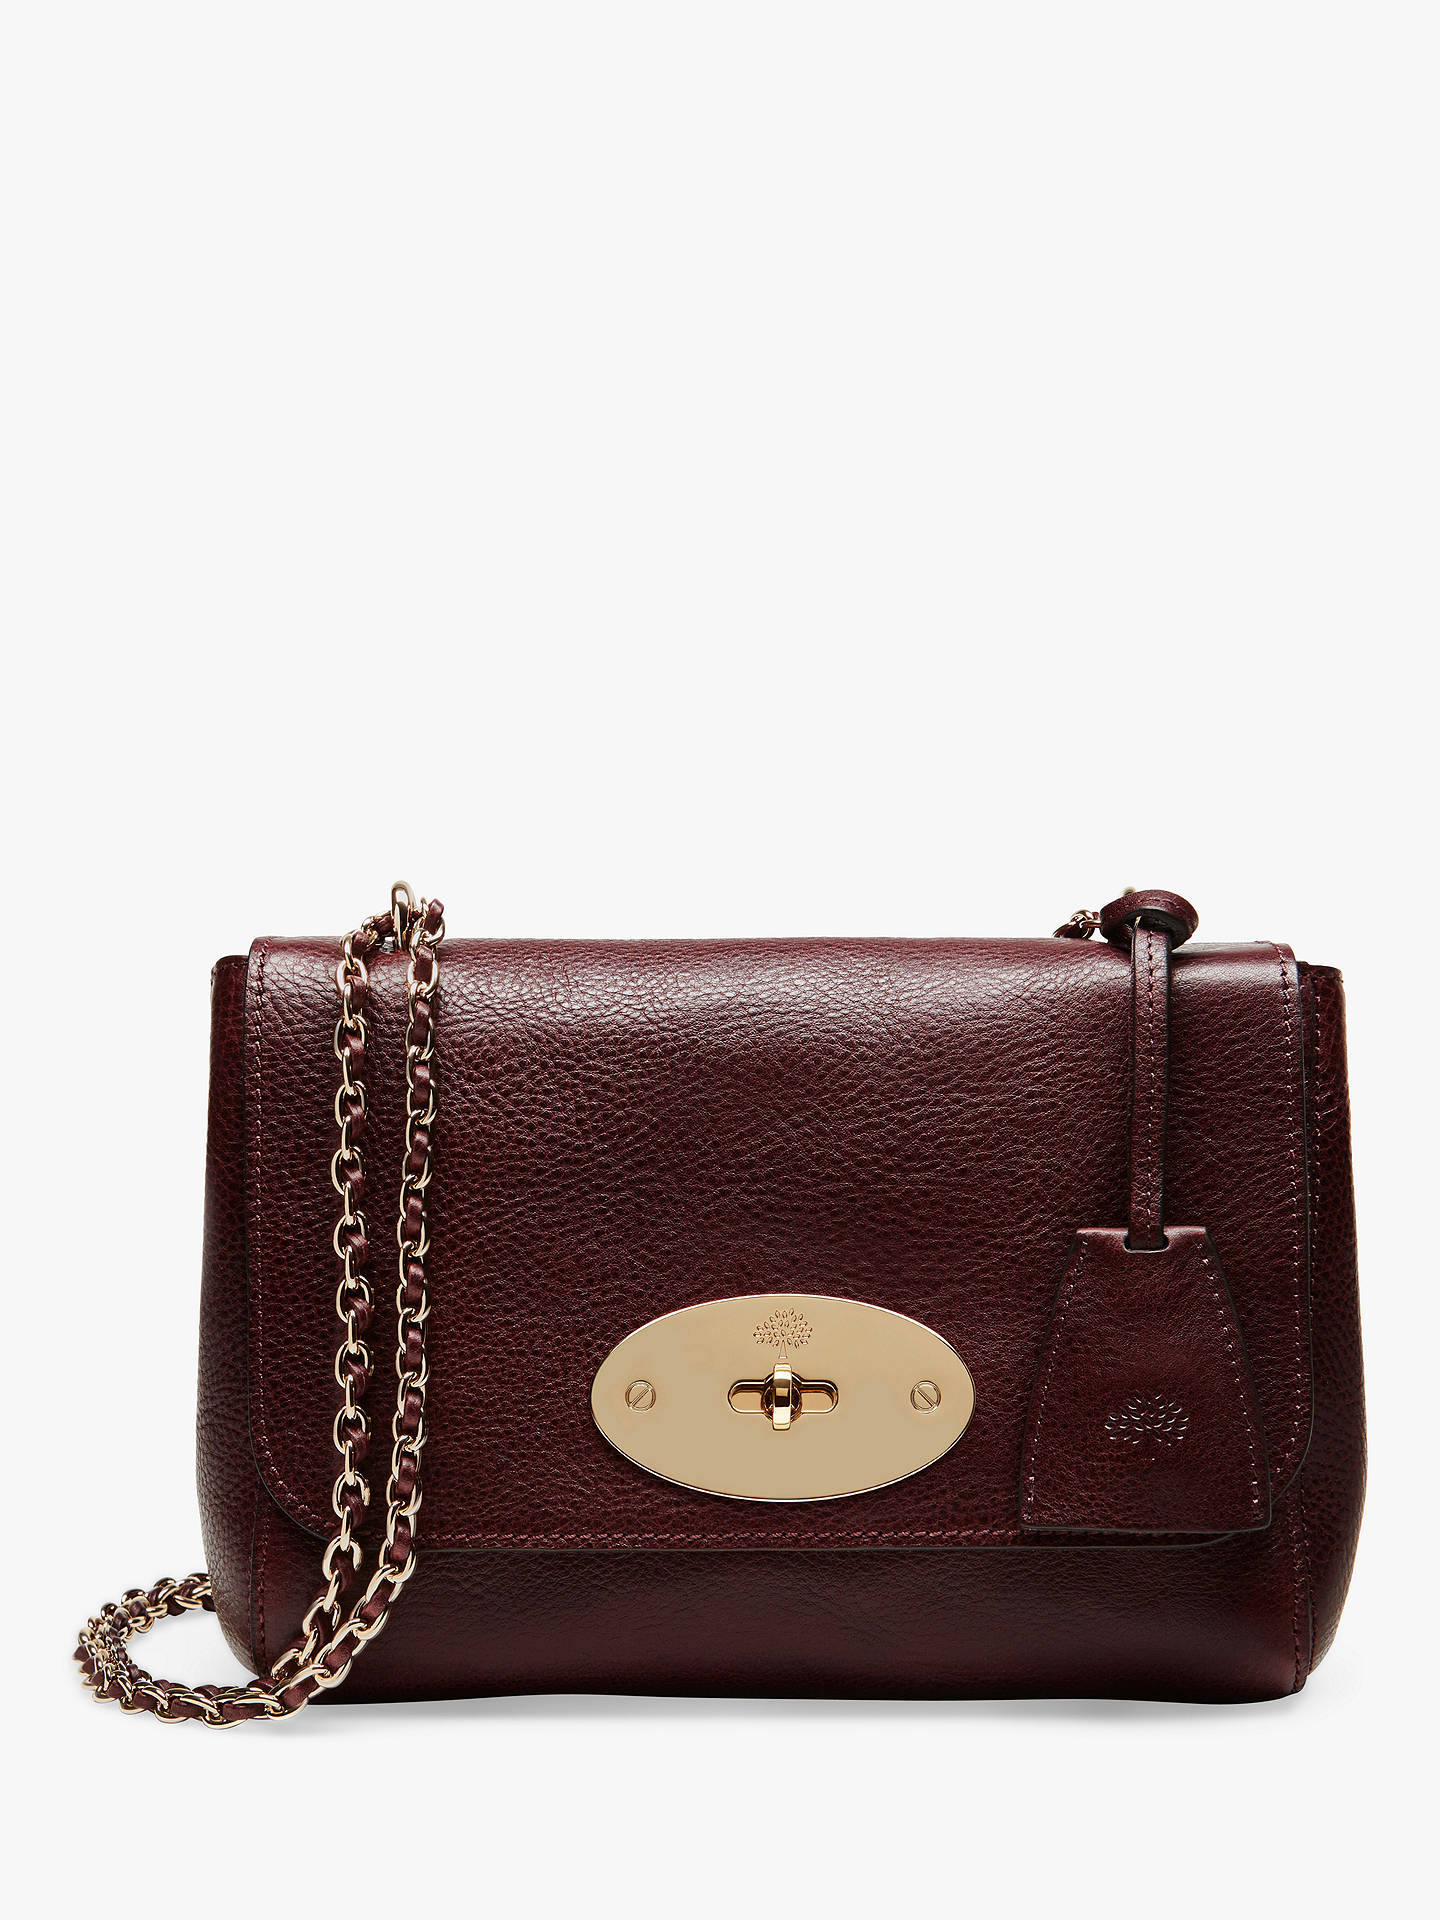 Mulberry Lily Coloured Veg Tanned Leather Cross Body Bag Oxblood Online At Johnlewis